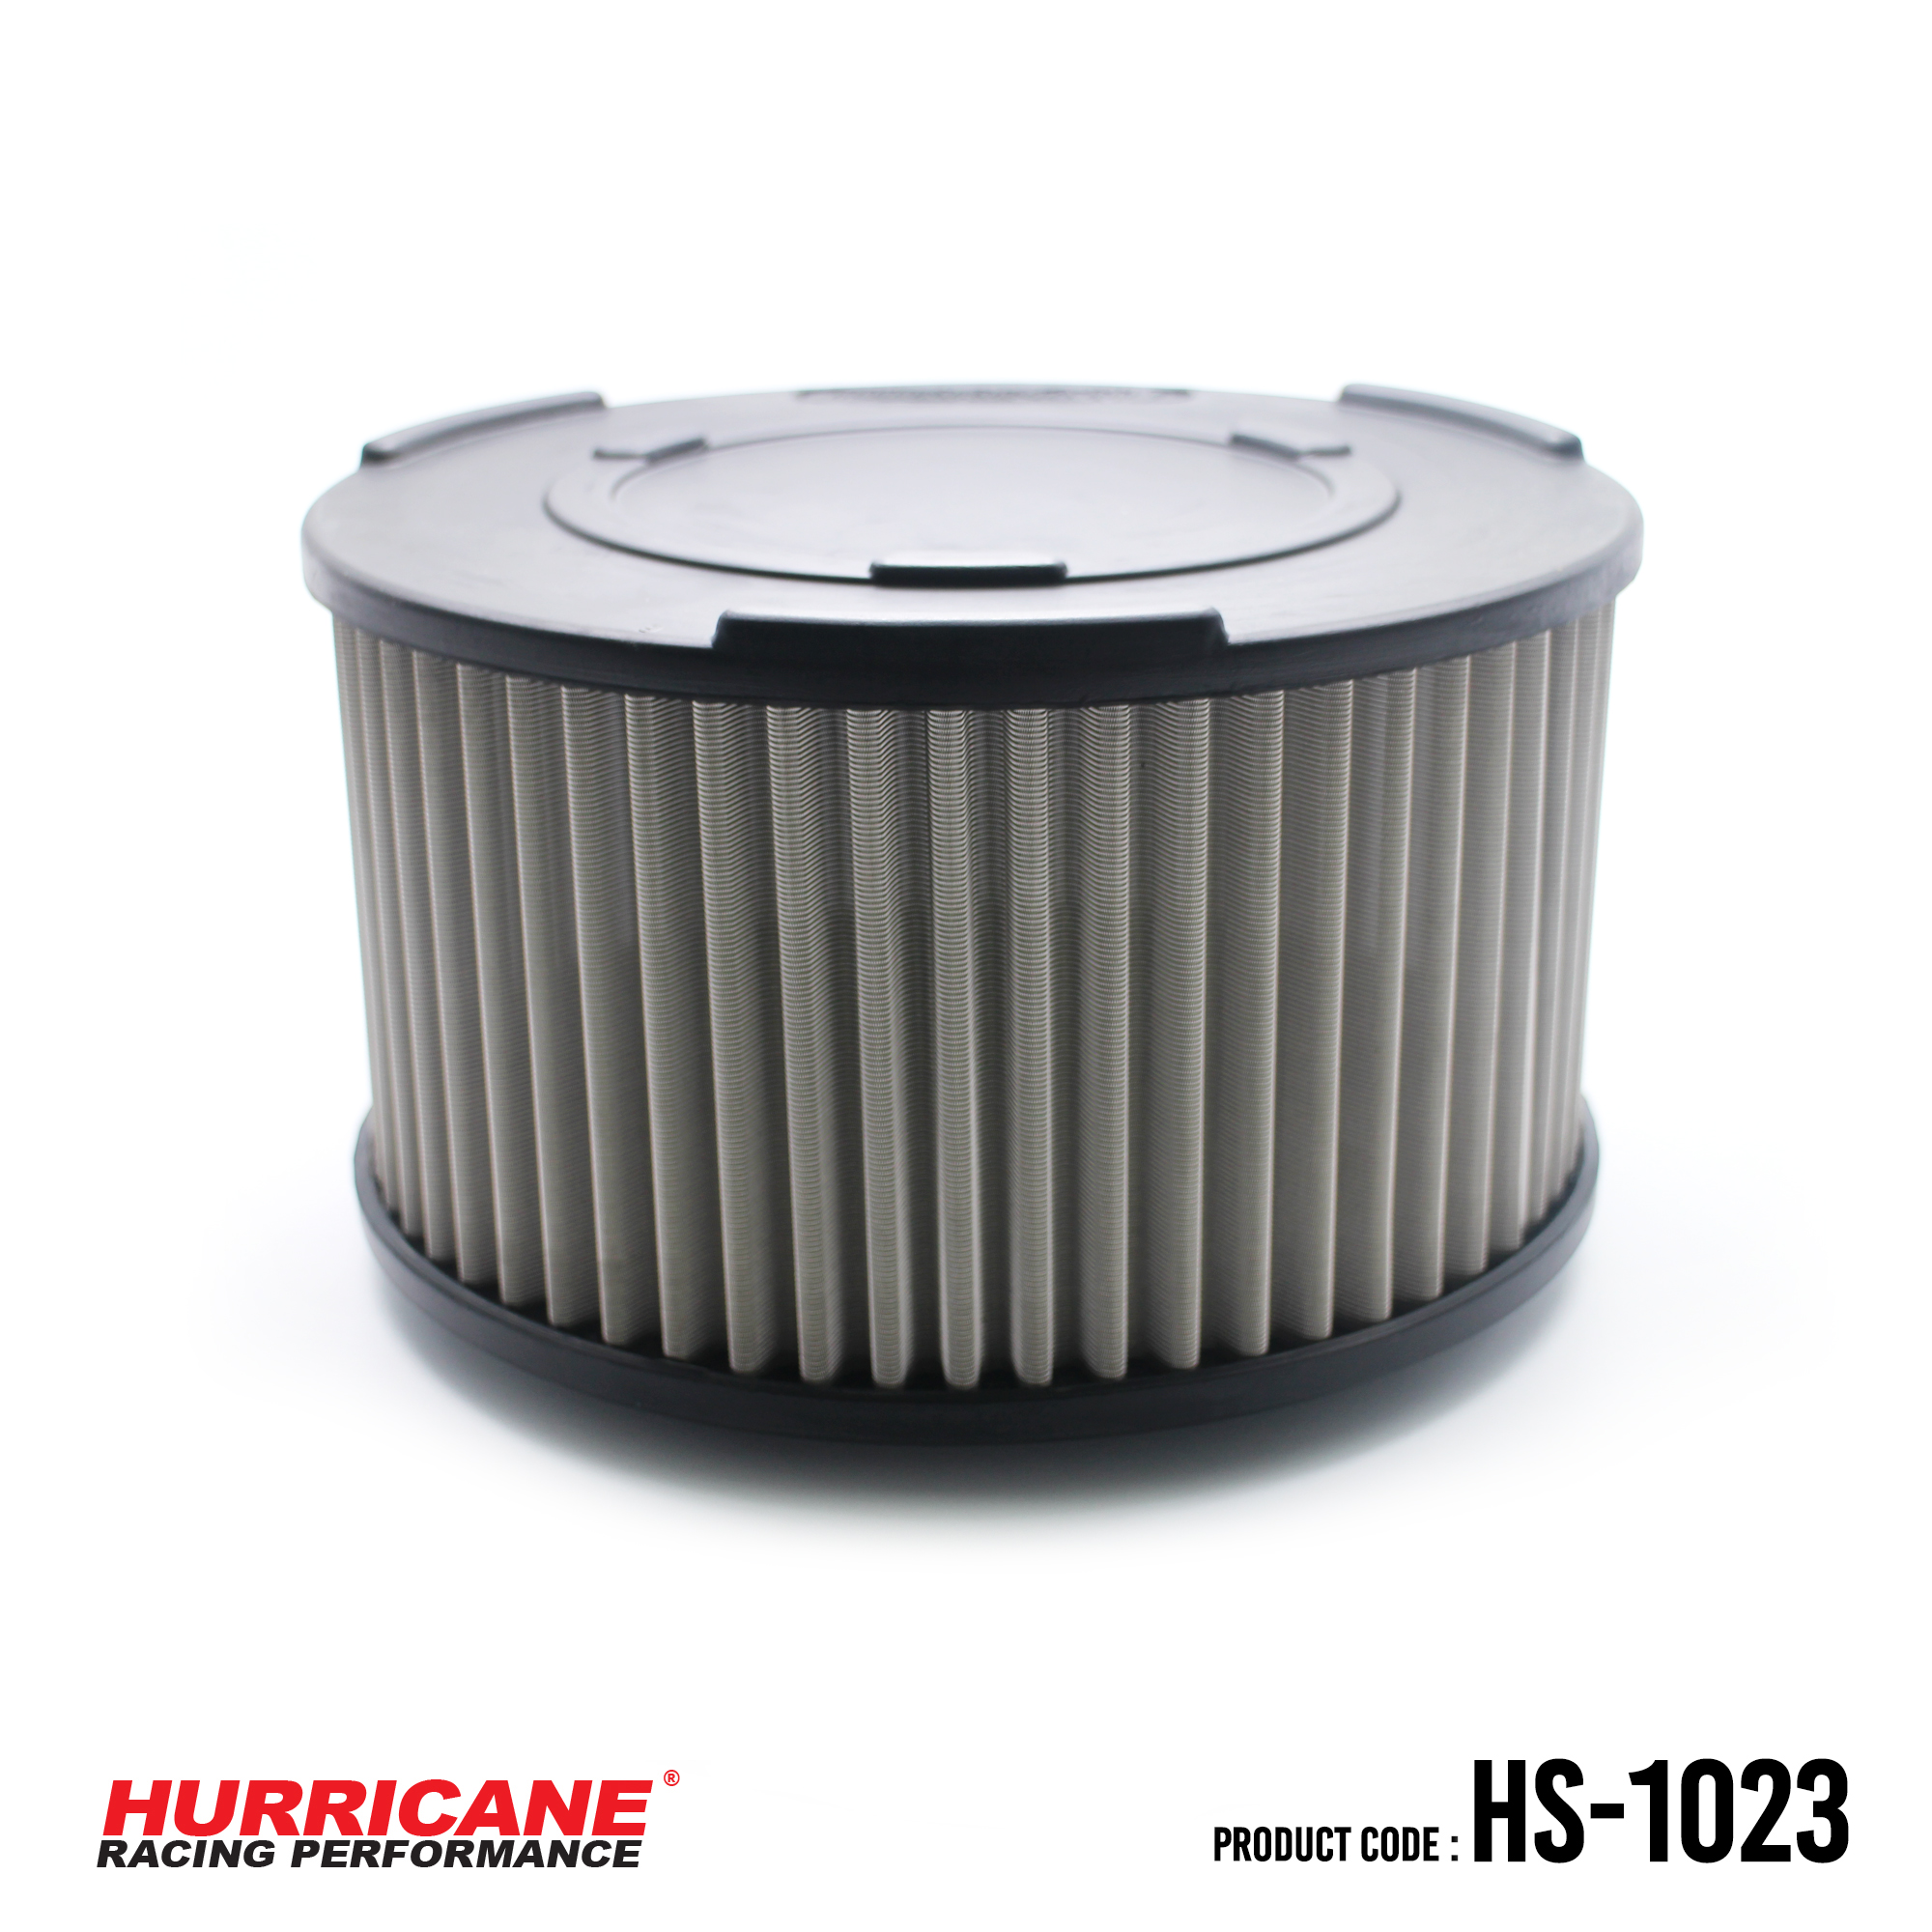 HURRICANE STAINLESS STEEL AIR FILTER FOR HS-1023 Ford Mazda